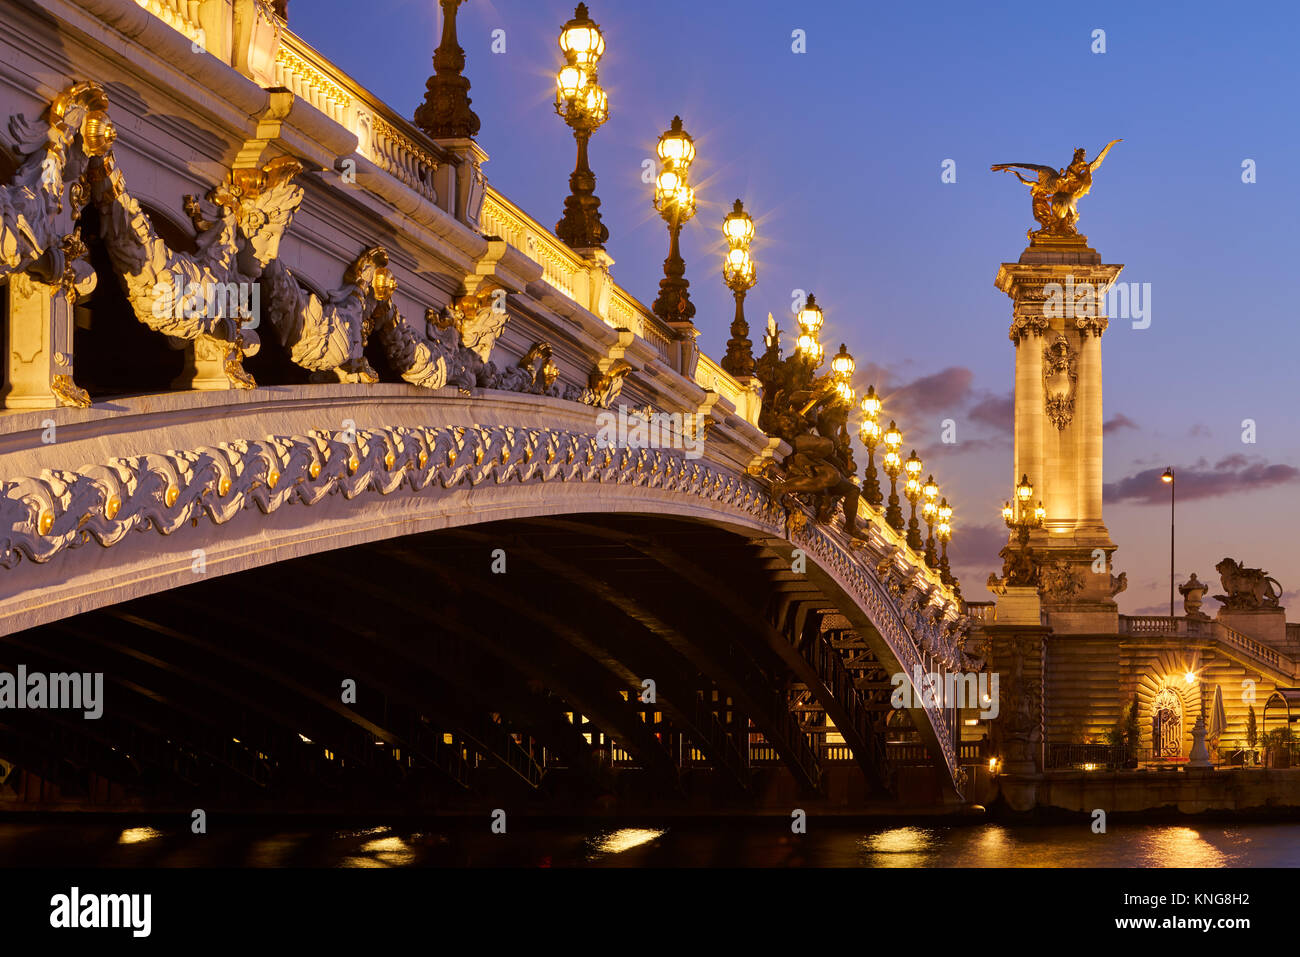 Close-up of Pont Alexandre III Bridge and illuminated lamp posts at sunset. 7th Arrondissement, Paris, France - Stock Image